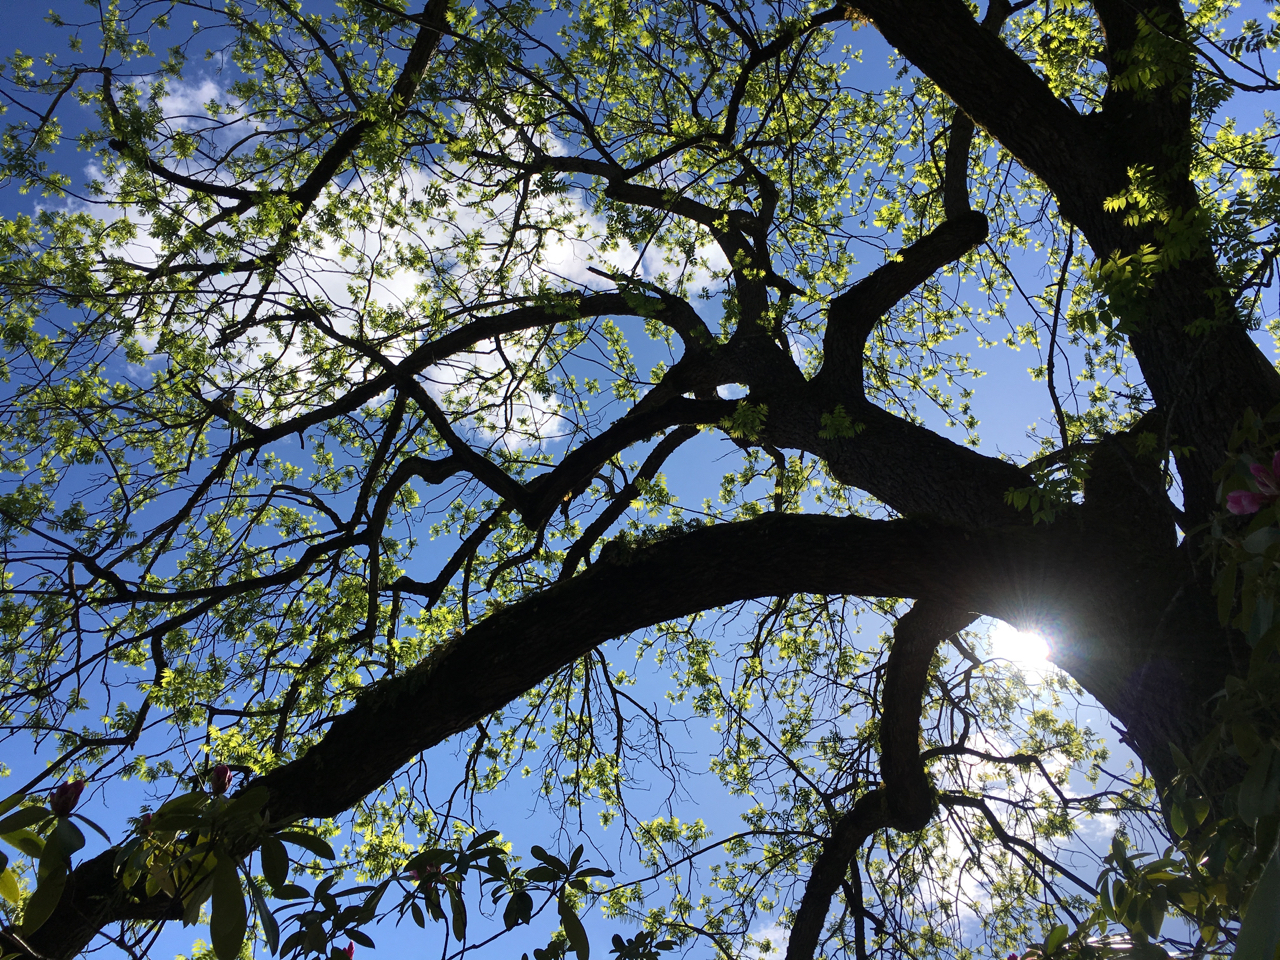 Looking at sky through tree branches